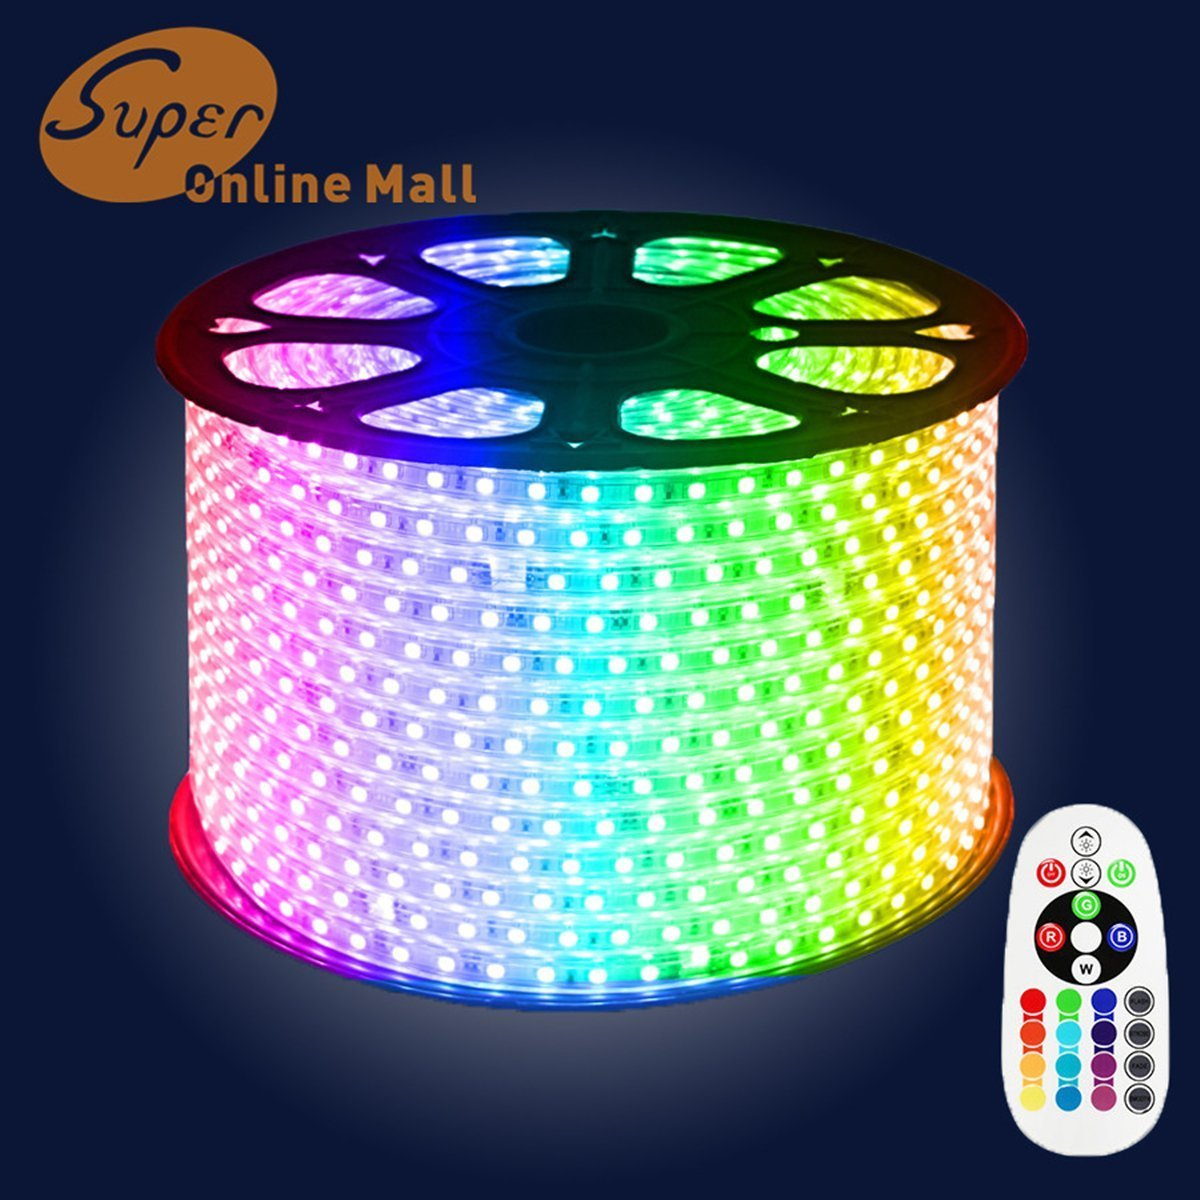 SuperonlineMall™ AC 110-120V Flexible RGB LED Strip Lights, 60 LEDs/M, Waterproof, Multi Color Changing 5050 SMD LED Rope Light + Remote Controller for Wedding Party Decoration (164ft/50m) by SuperonlineMall